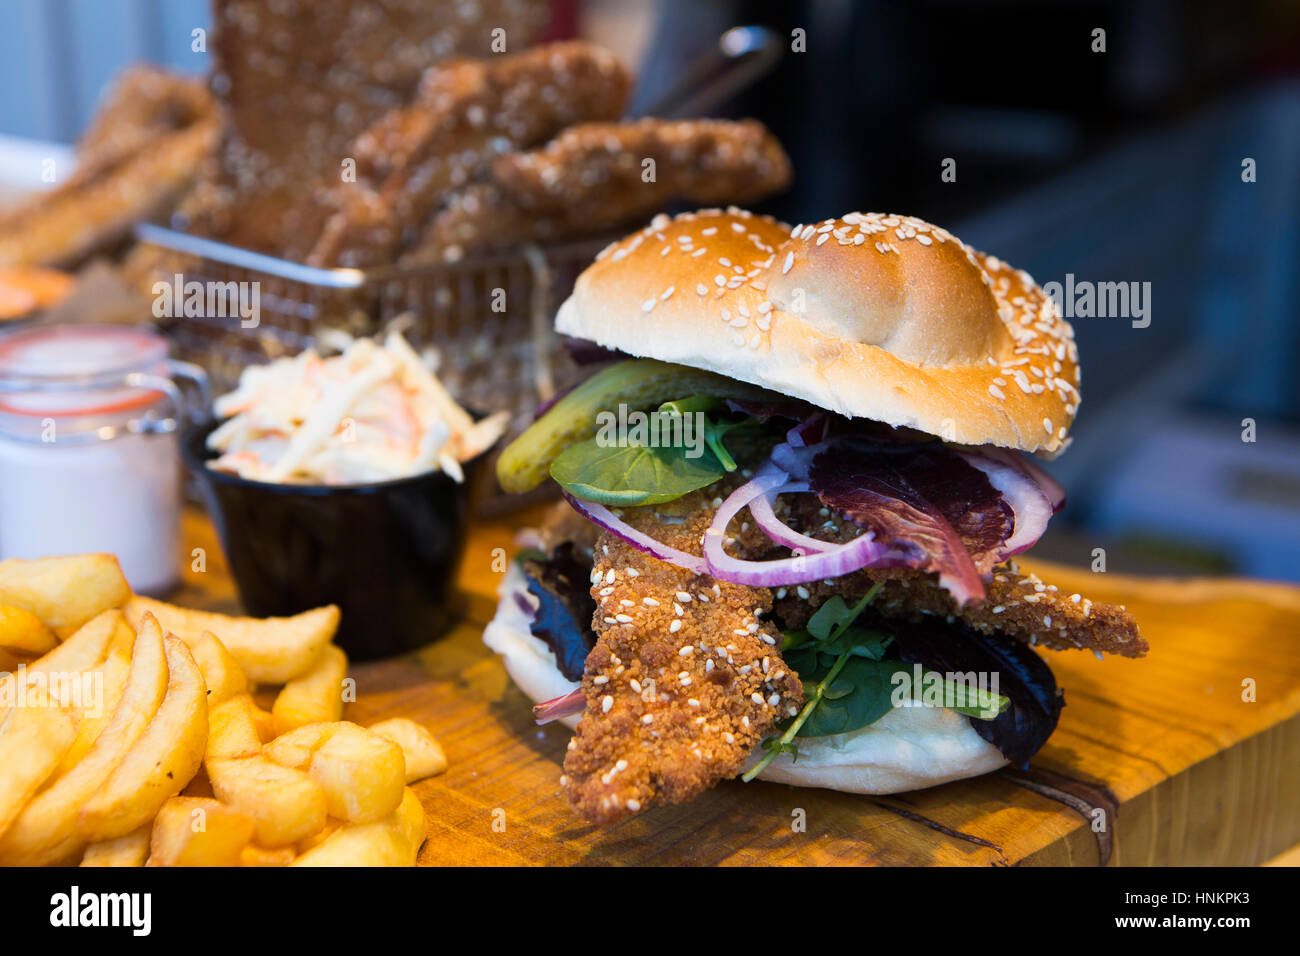 Chicken Schnitzel Sandwich Stock Photo Alamy